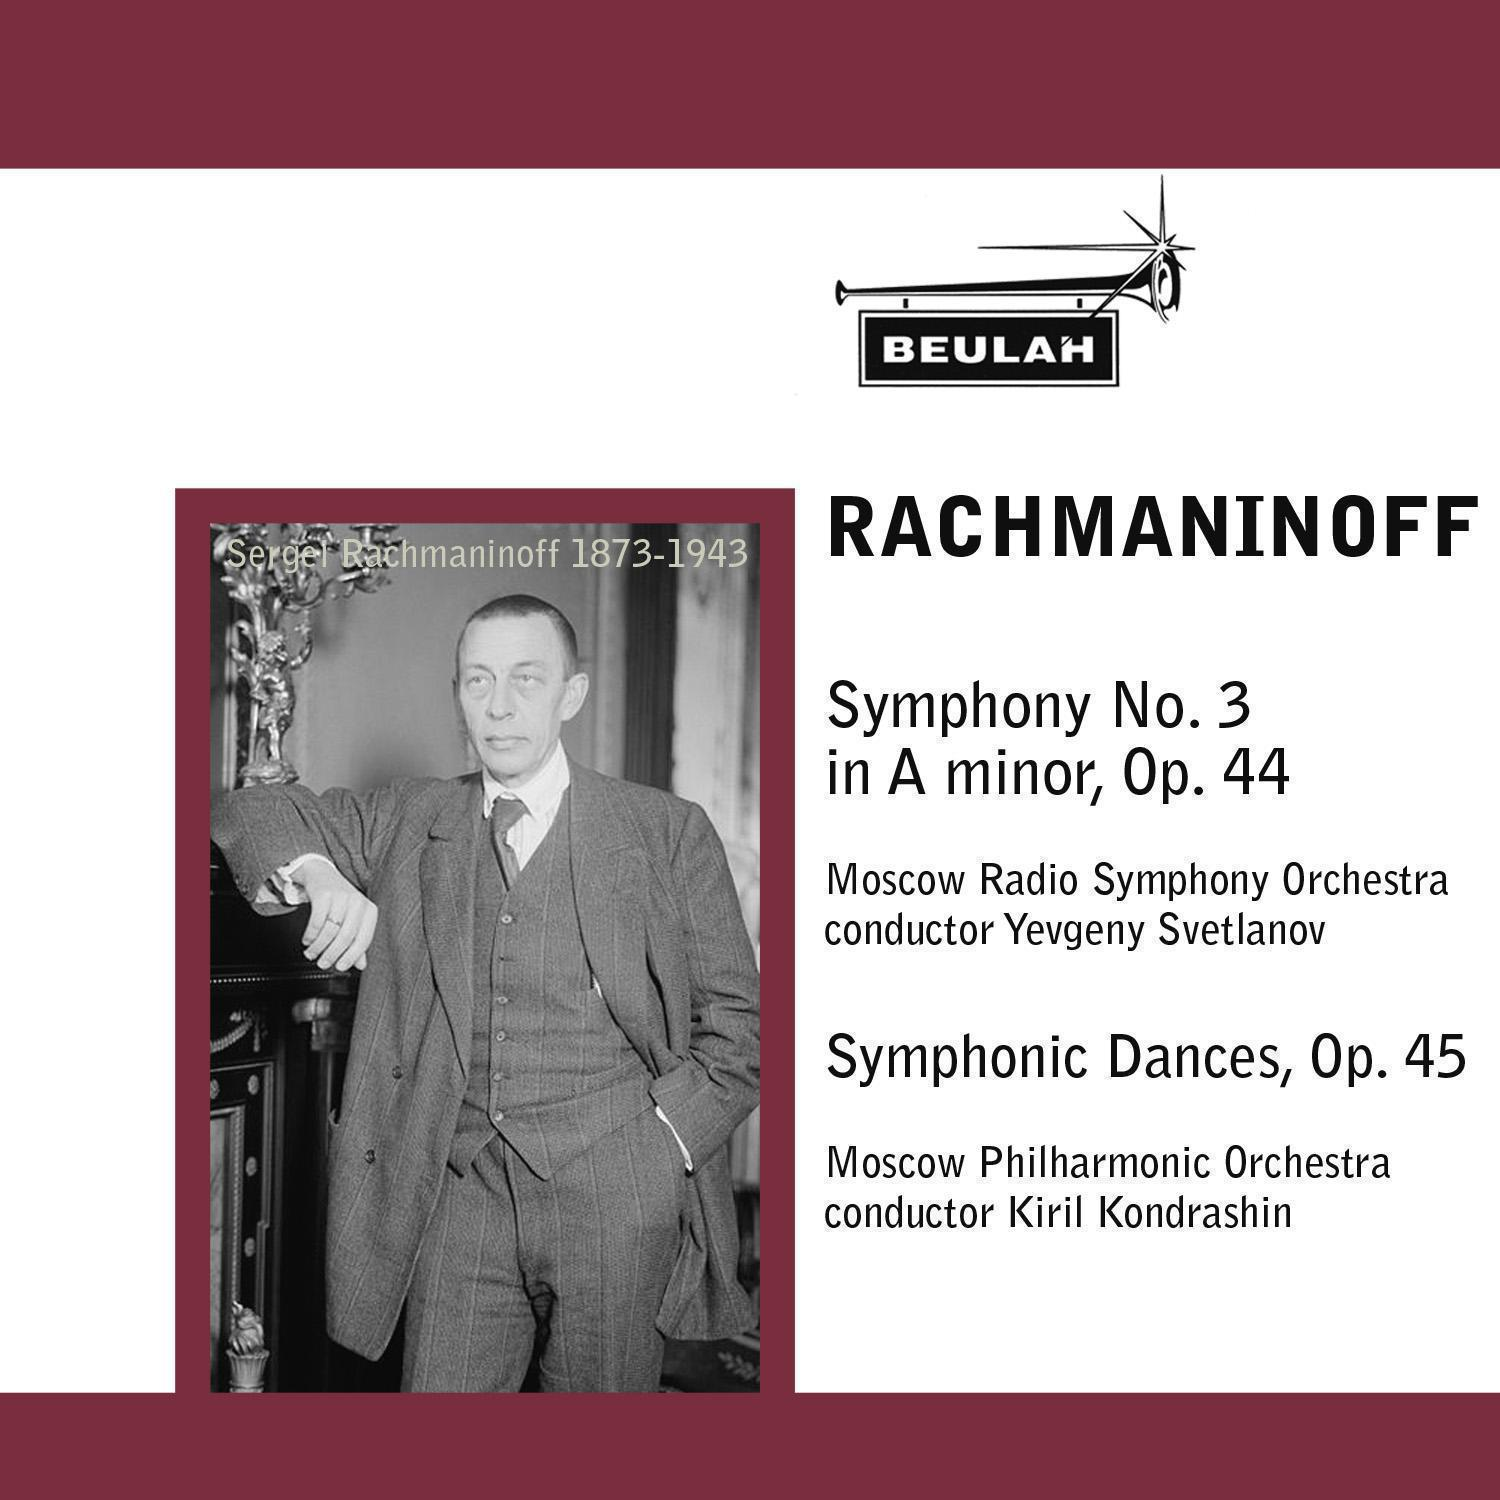 rachmaninoff symphony number 3 and symphonic dances